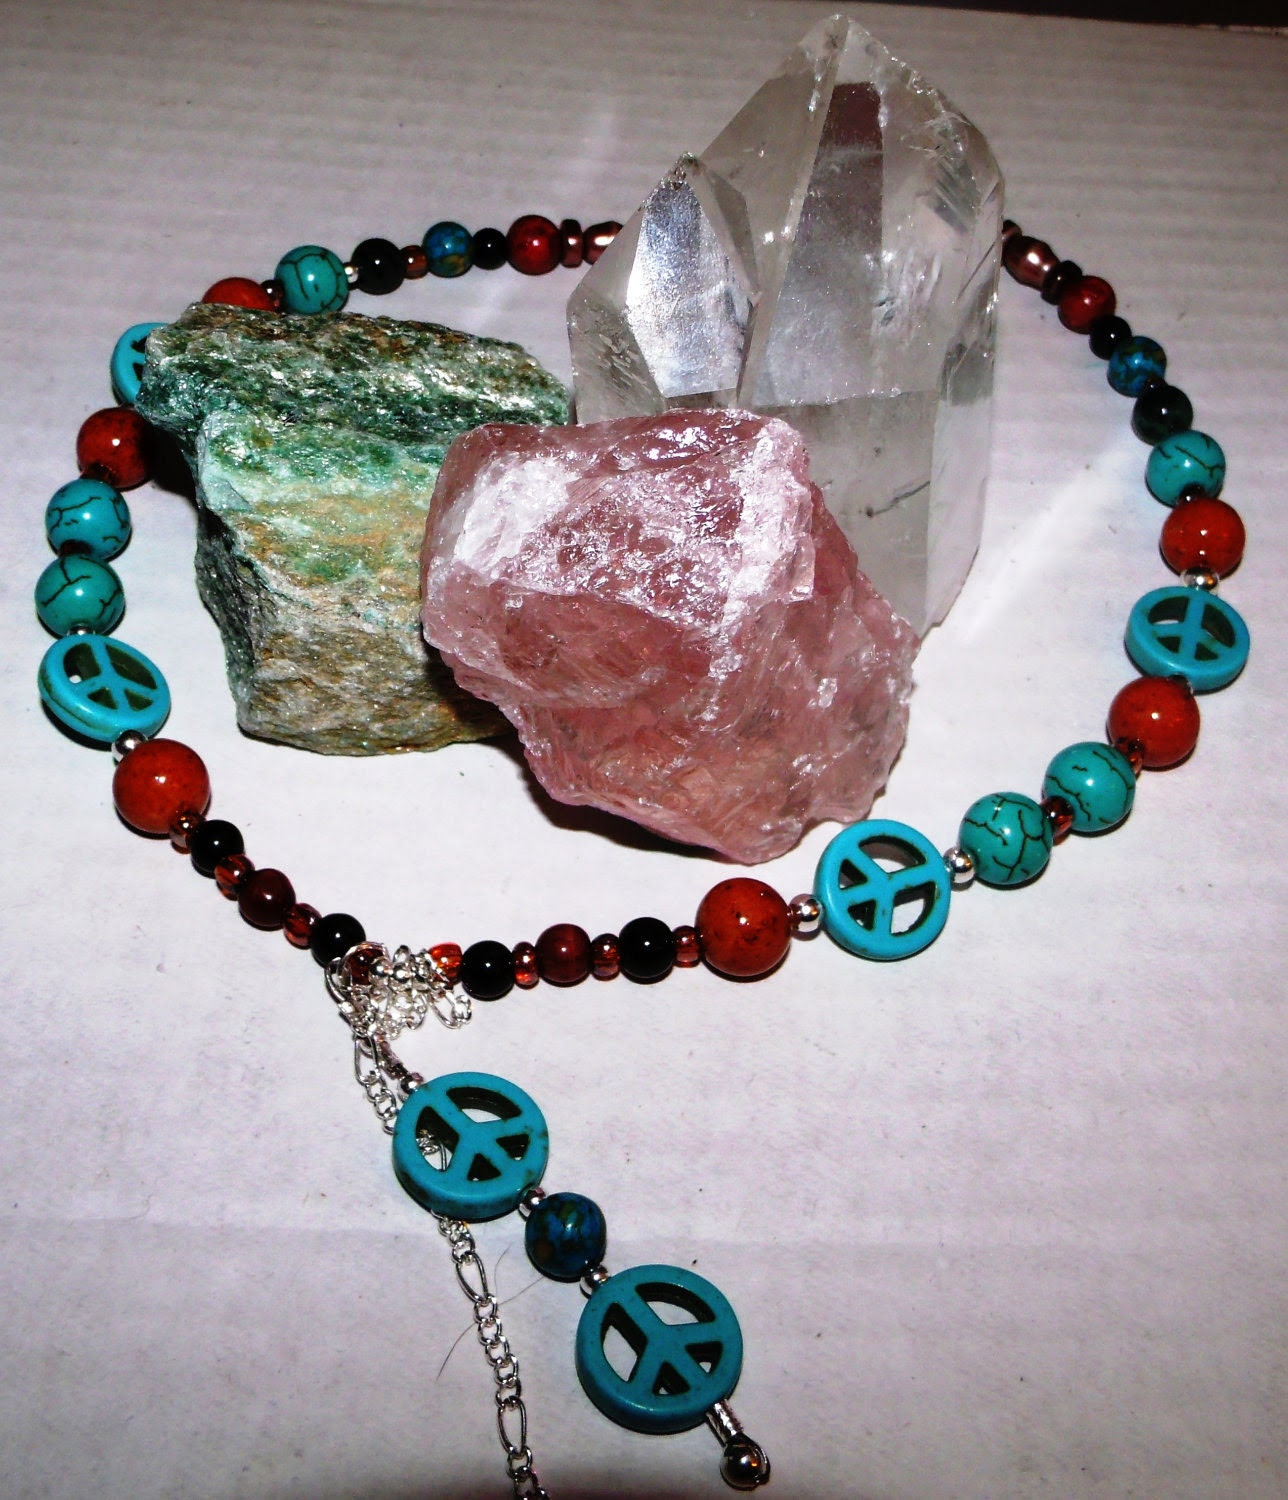 Semi Precioius Stone Bead Peace Necklace Genuine Turquoise Jasper Carnelian and Coral Beads OOAK Natural Crystals